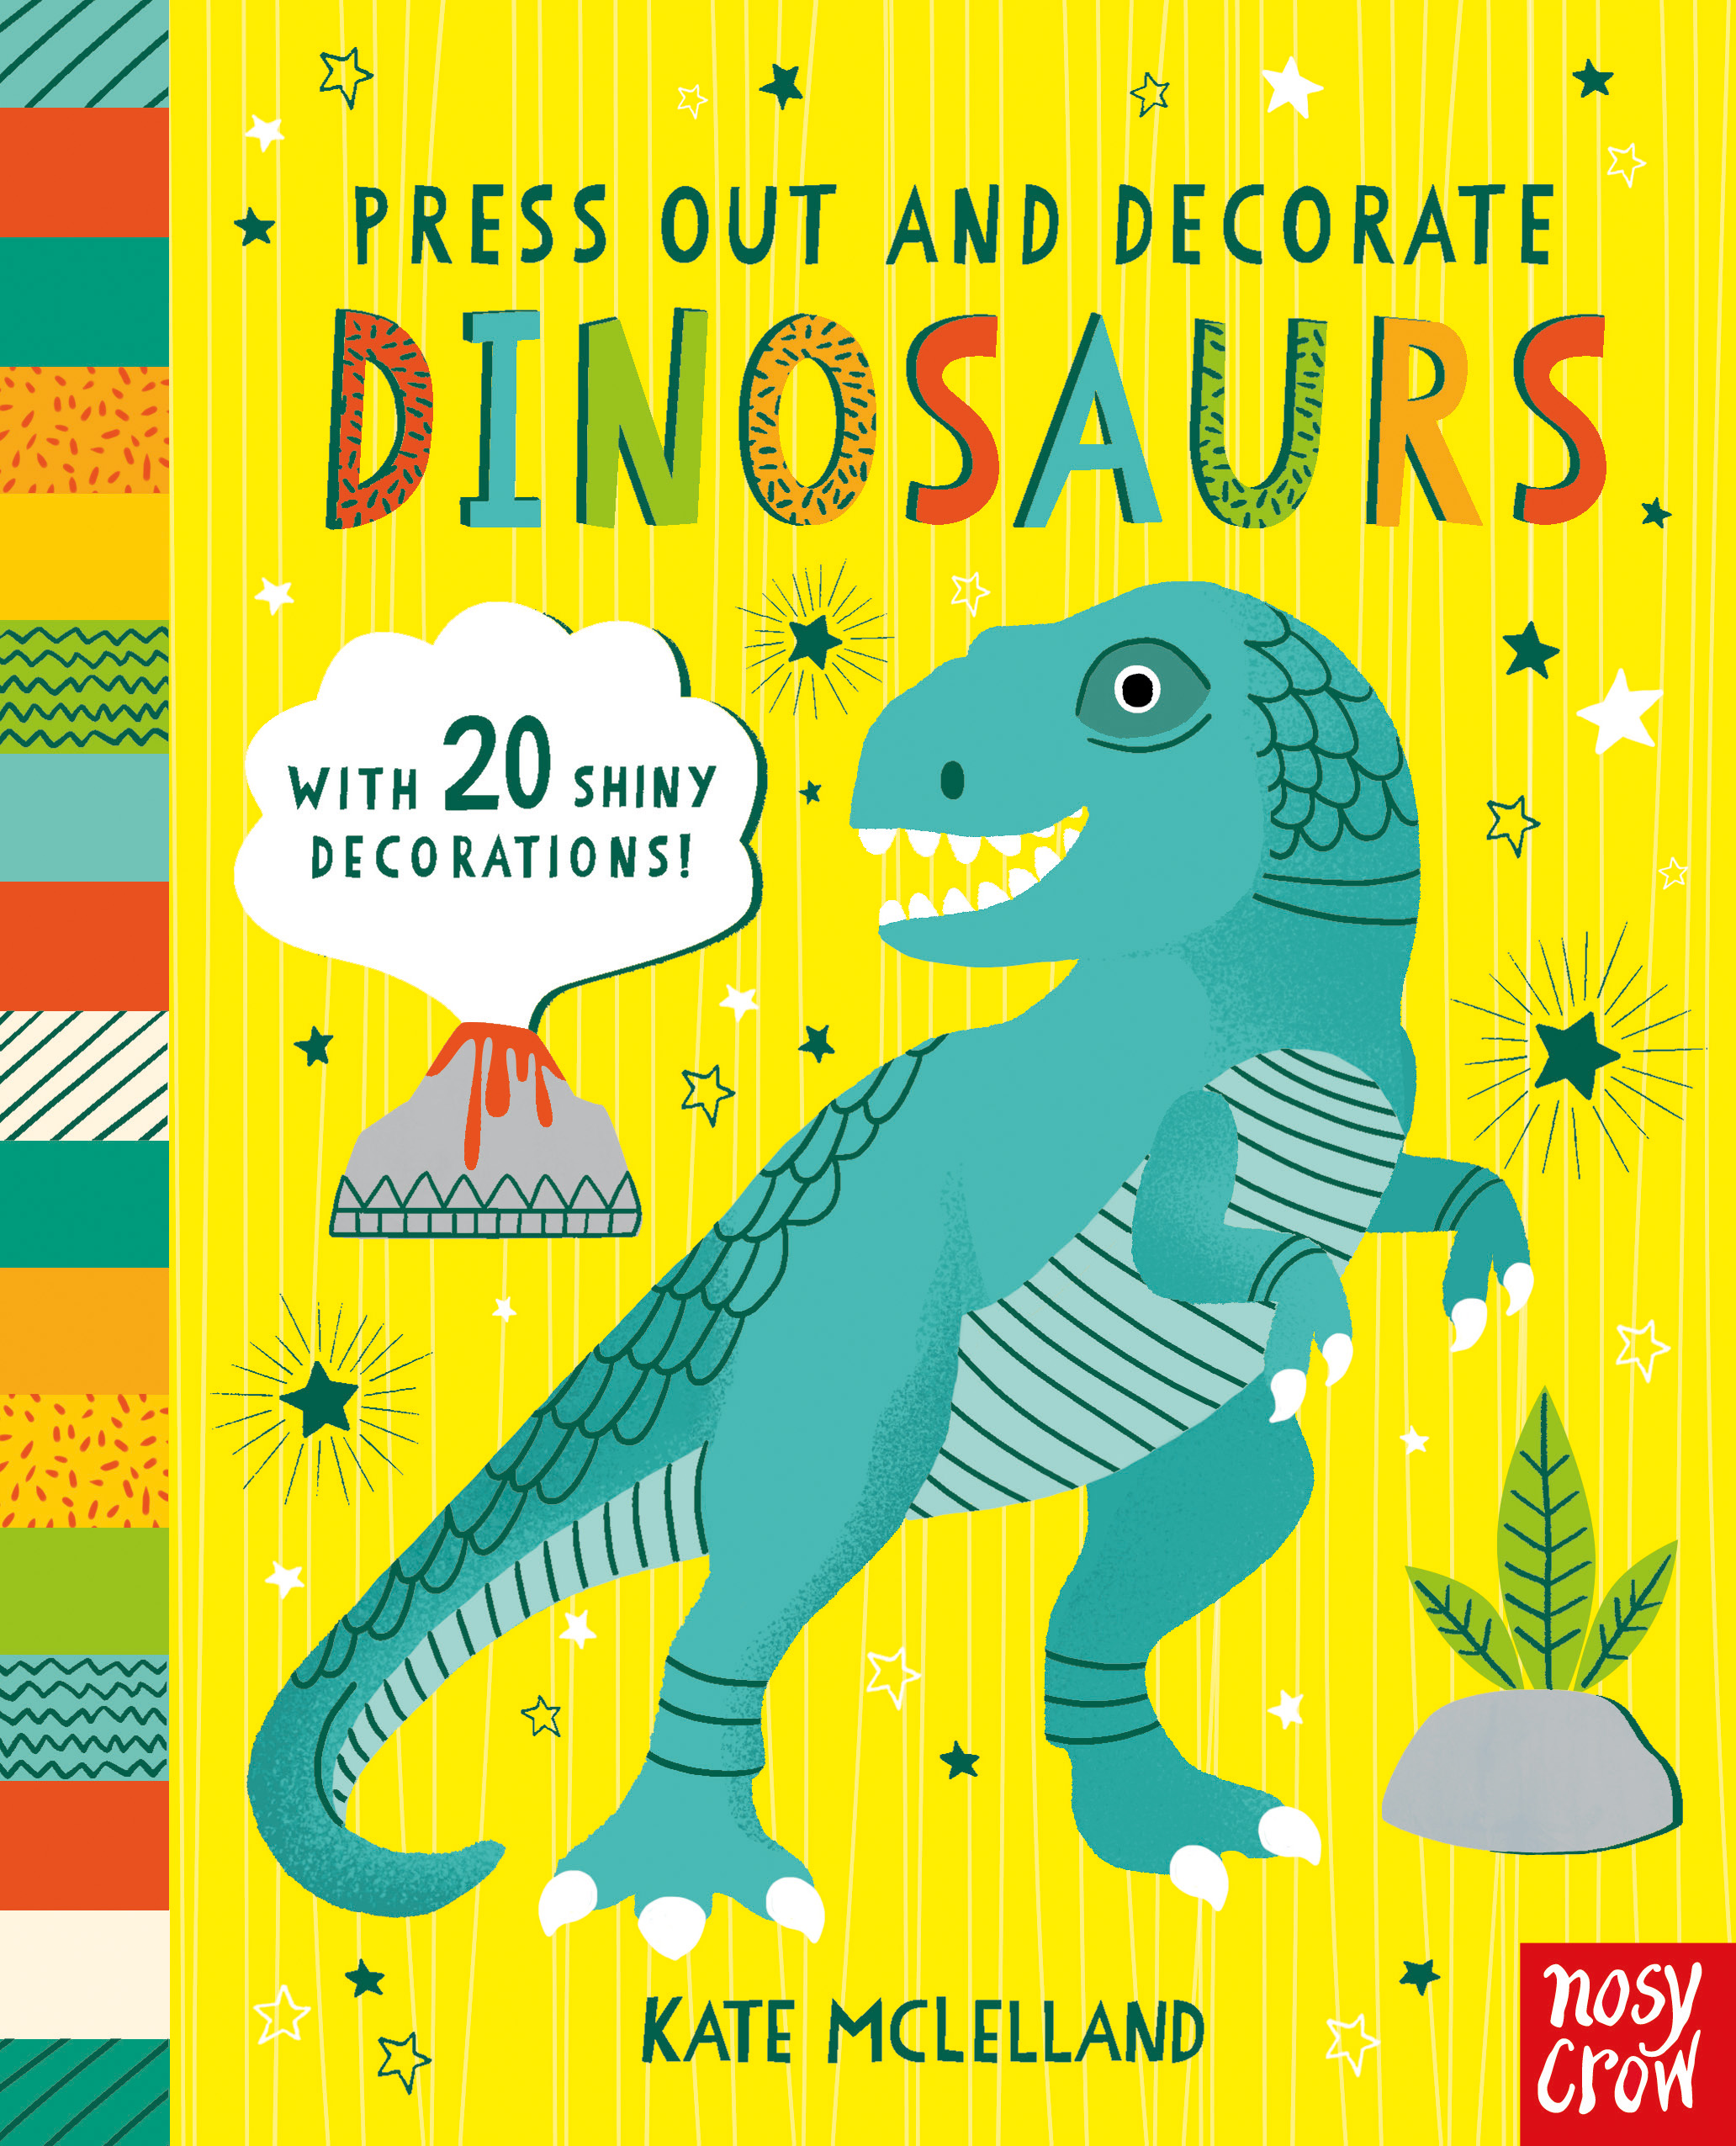 PressOutAndDecorate_Dinosaurs_Cover_HR